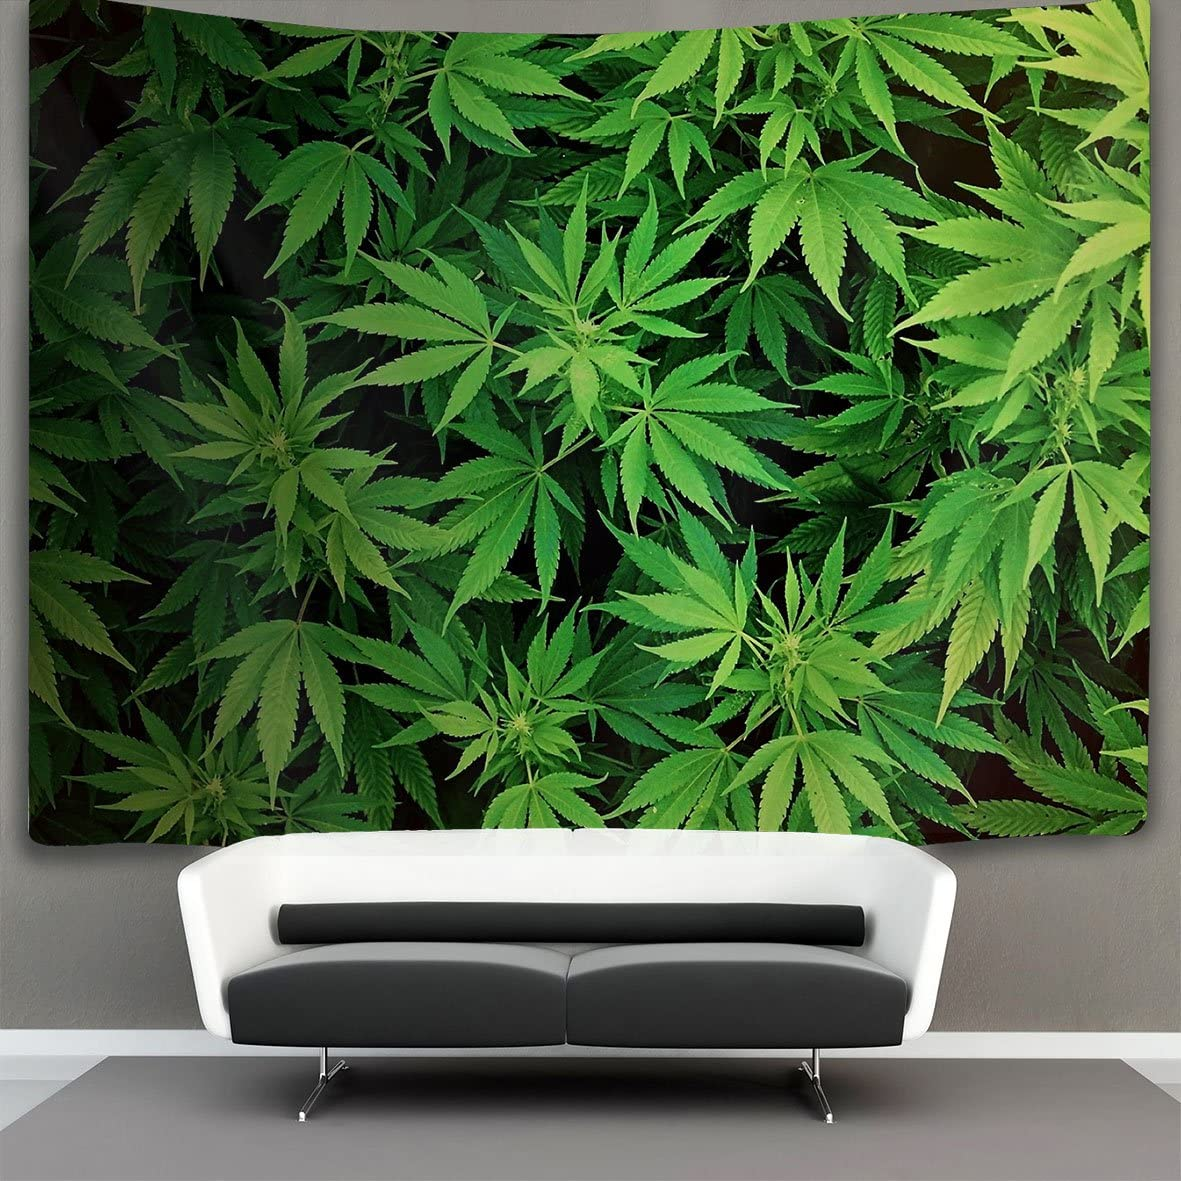 NiYoung Cannabis Leaf Green Weed Marijuana Wall Tapestry Hippie Art Tapestry Wall Hanging Home Decor Extra Large tablecloths 60×90 inches for Bedroom Living Room Dorm Room